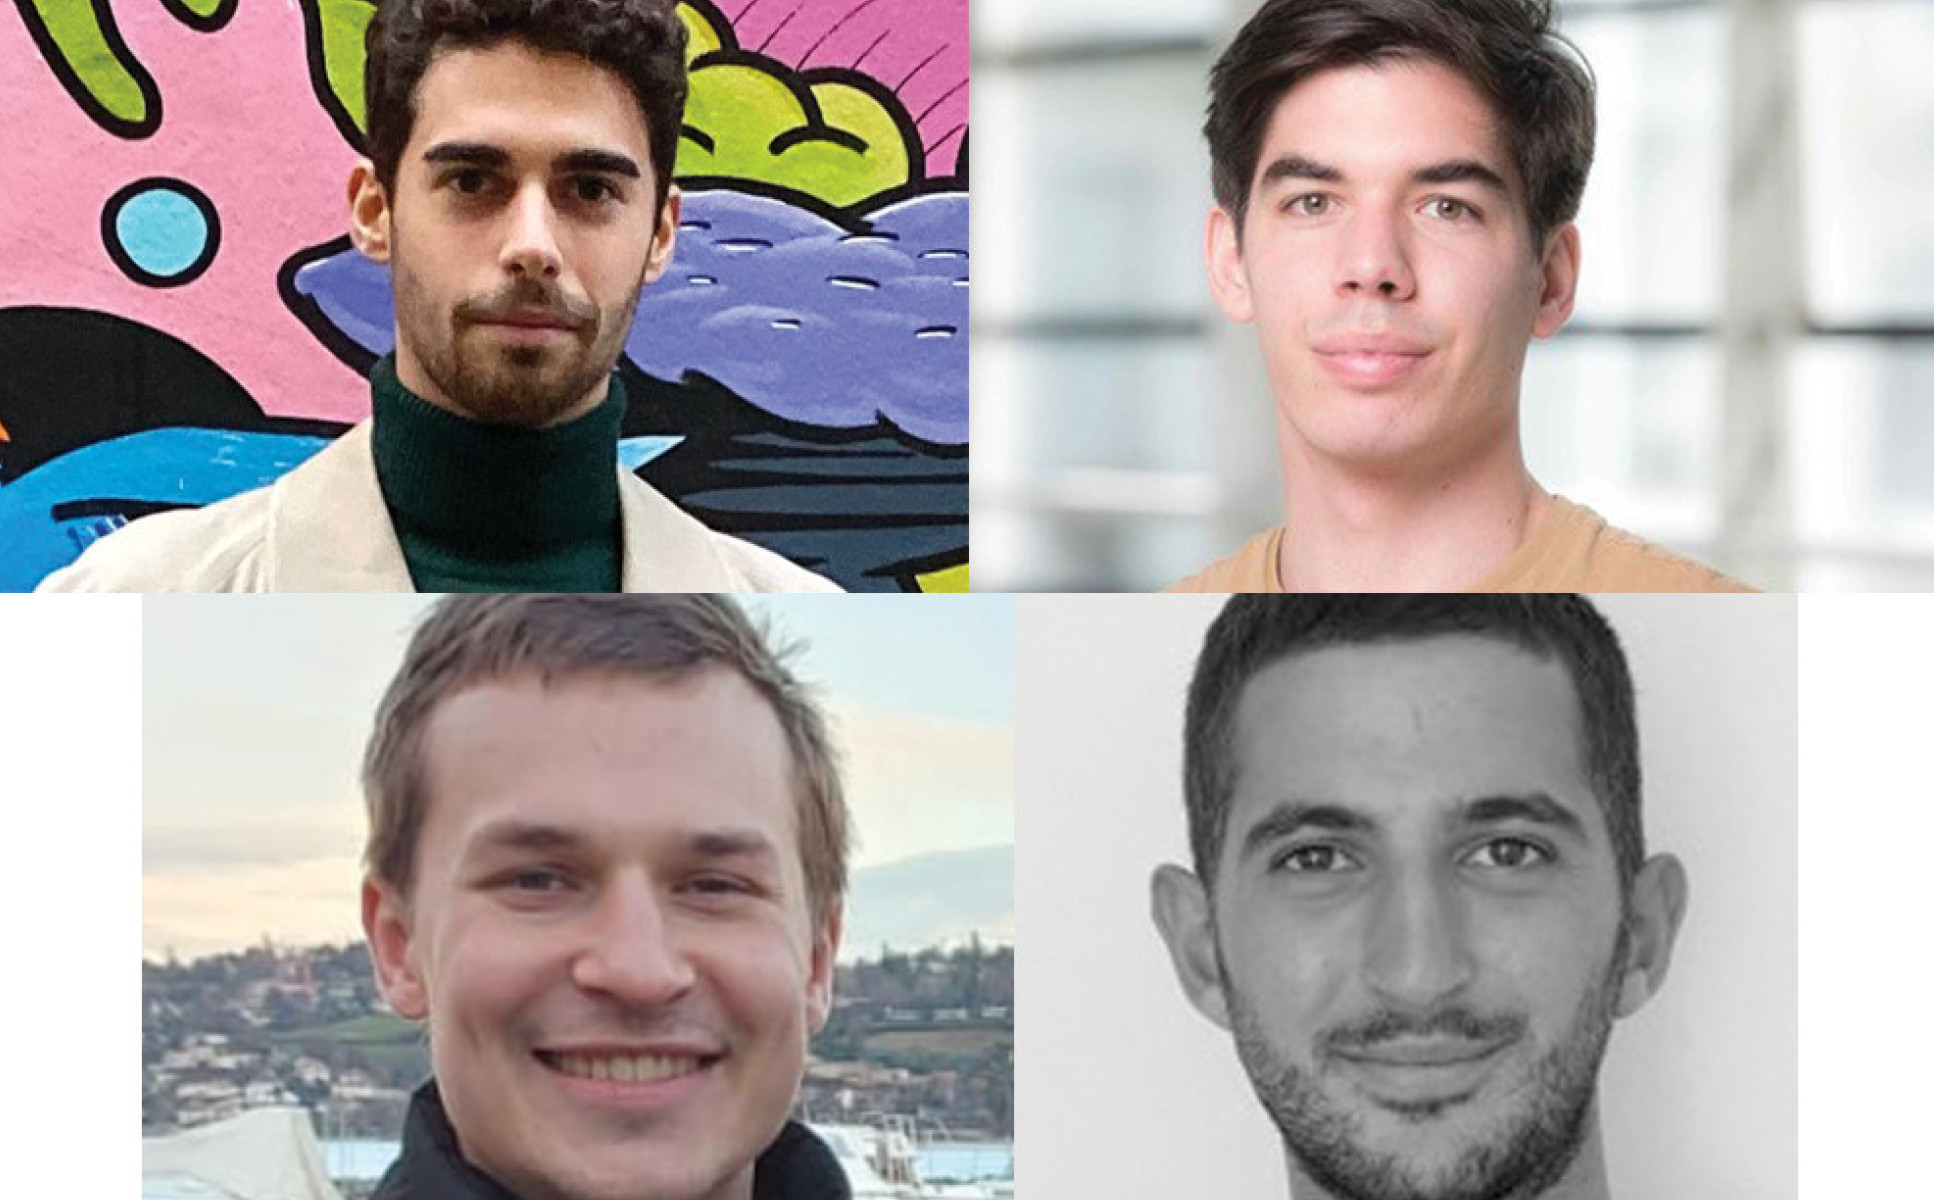 A collage of photos of the team that came in runners-up place: Enrico Crovini - PhD student, Francesco Sanna Passino - Research associate, Karl Hallgren - PhD student, Theodoulos Rodosthenous - PhD student, Yanni Papandreou - PhD student. All from the Department of Mathematics